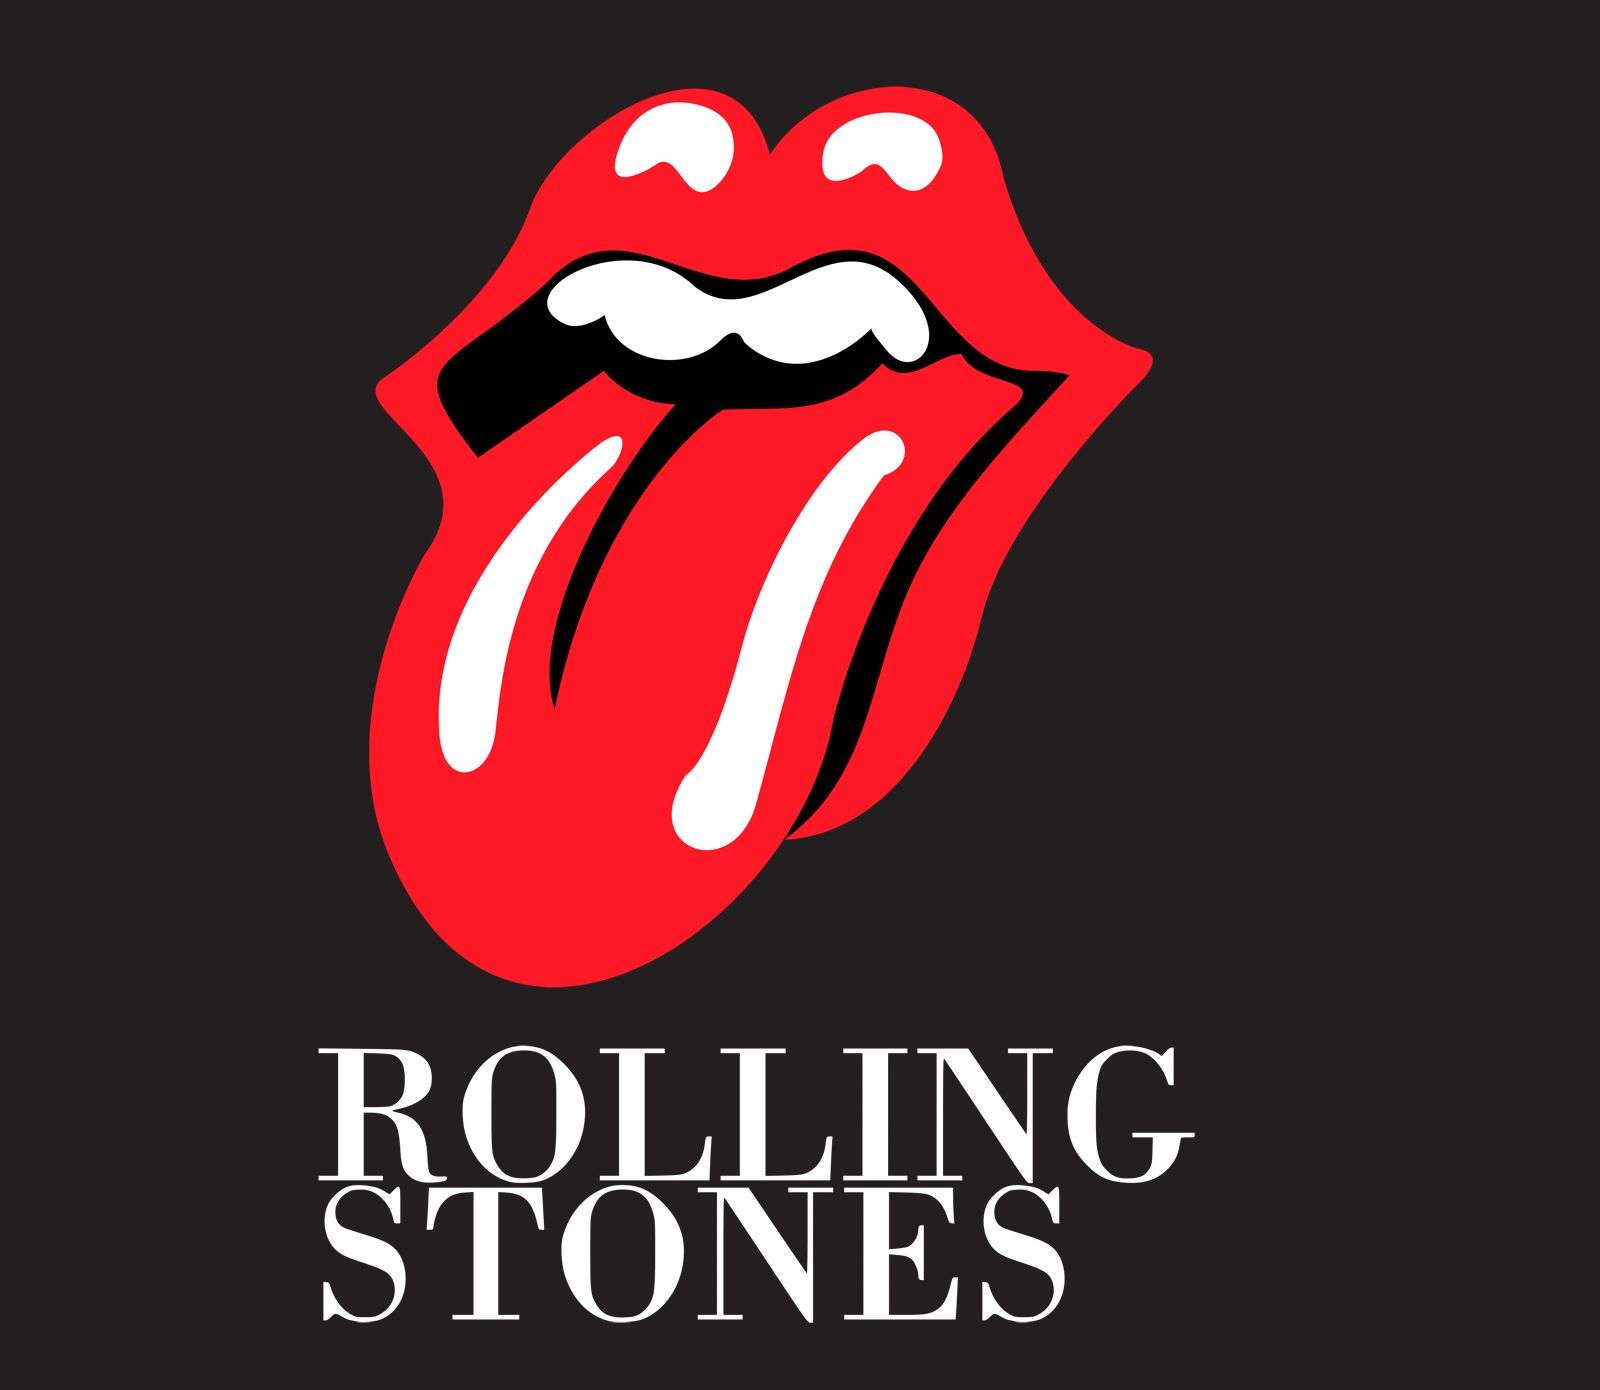 Rolling Stones Tongue Logo - rolling stones tongue logo | All logos world | Rolling Stones ...